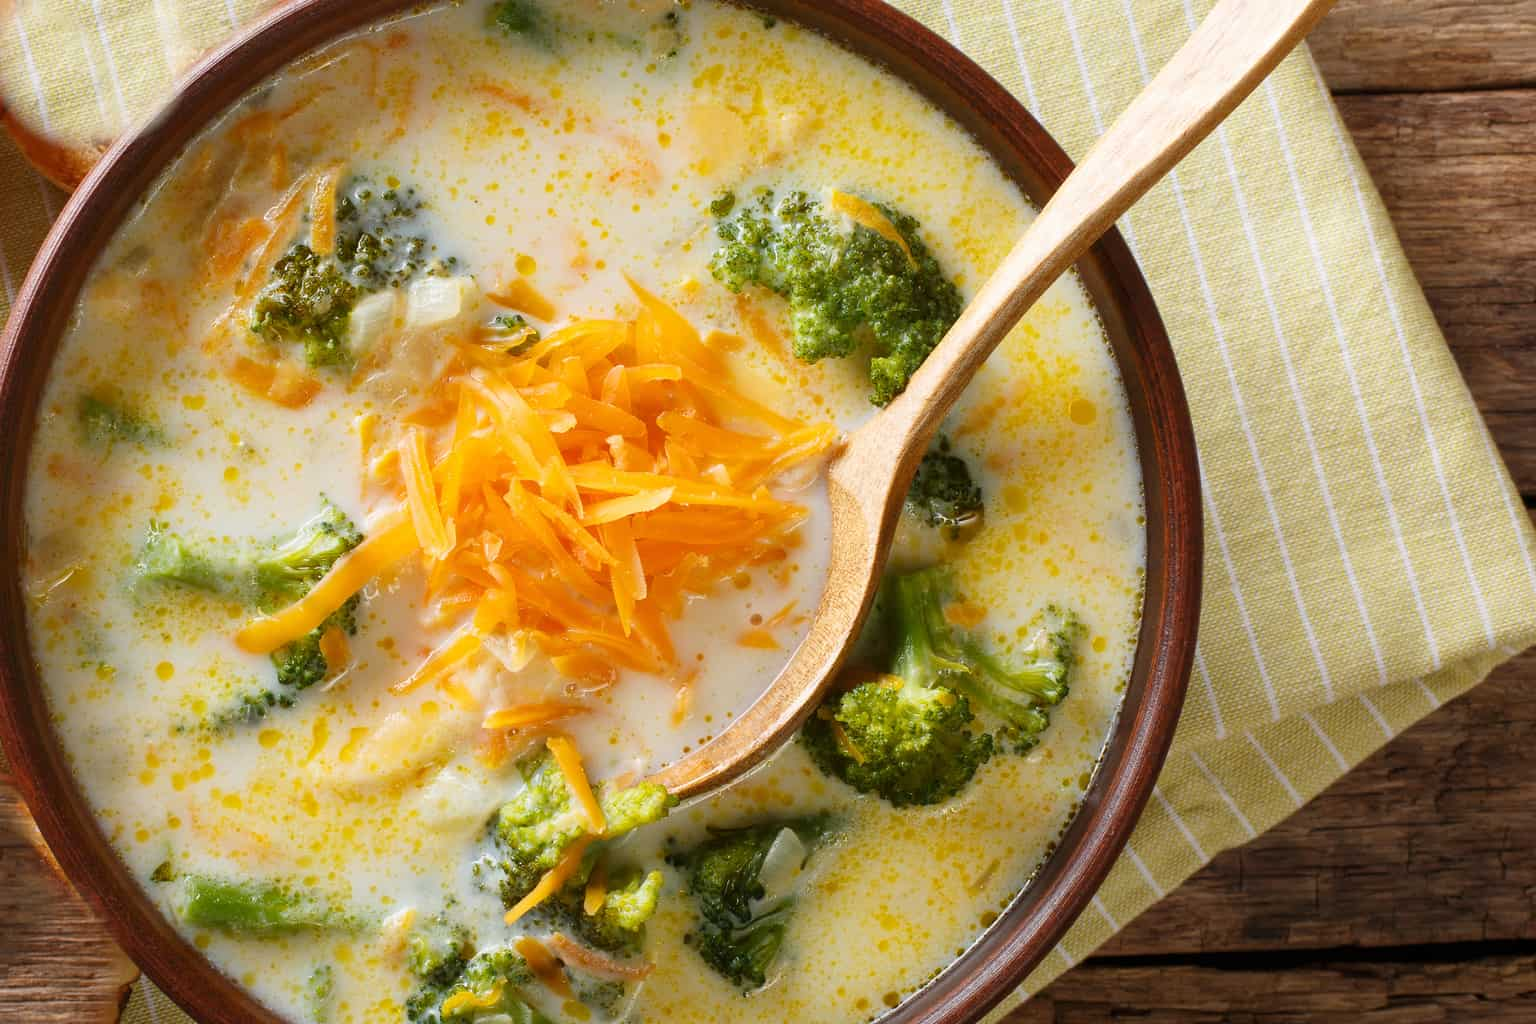 keto broccoli and cheese soup in a bowl